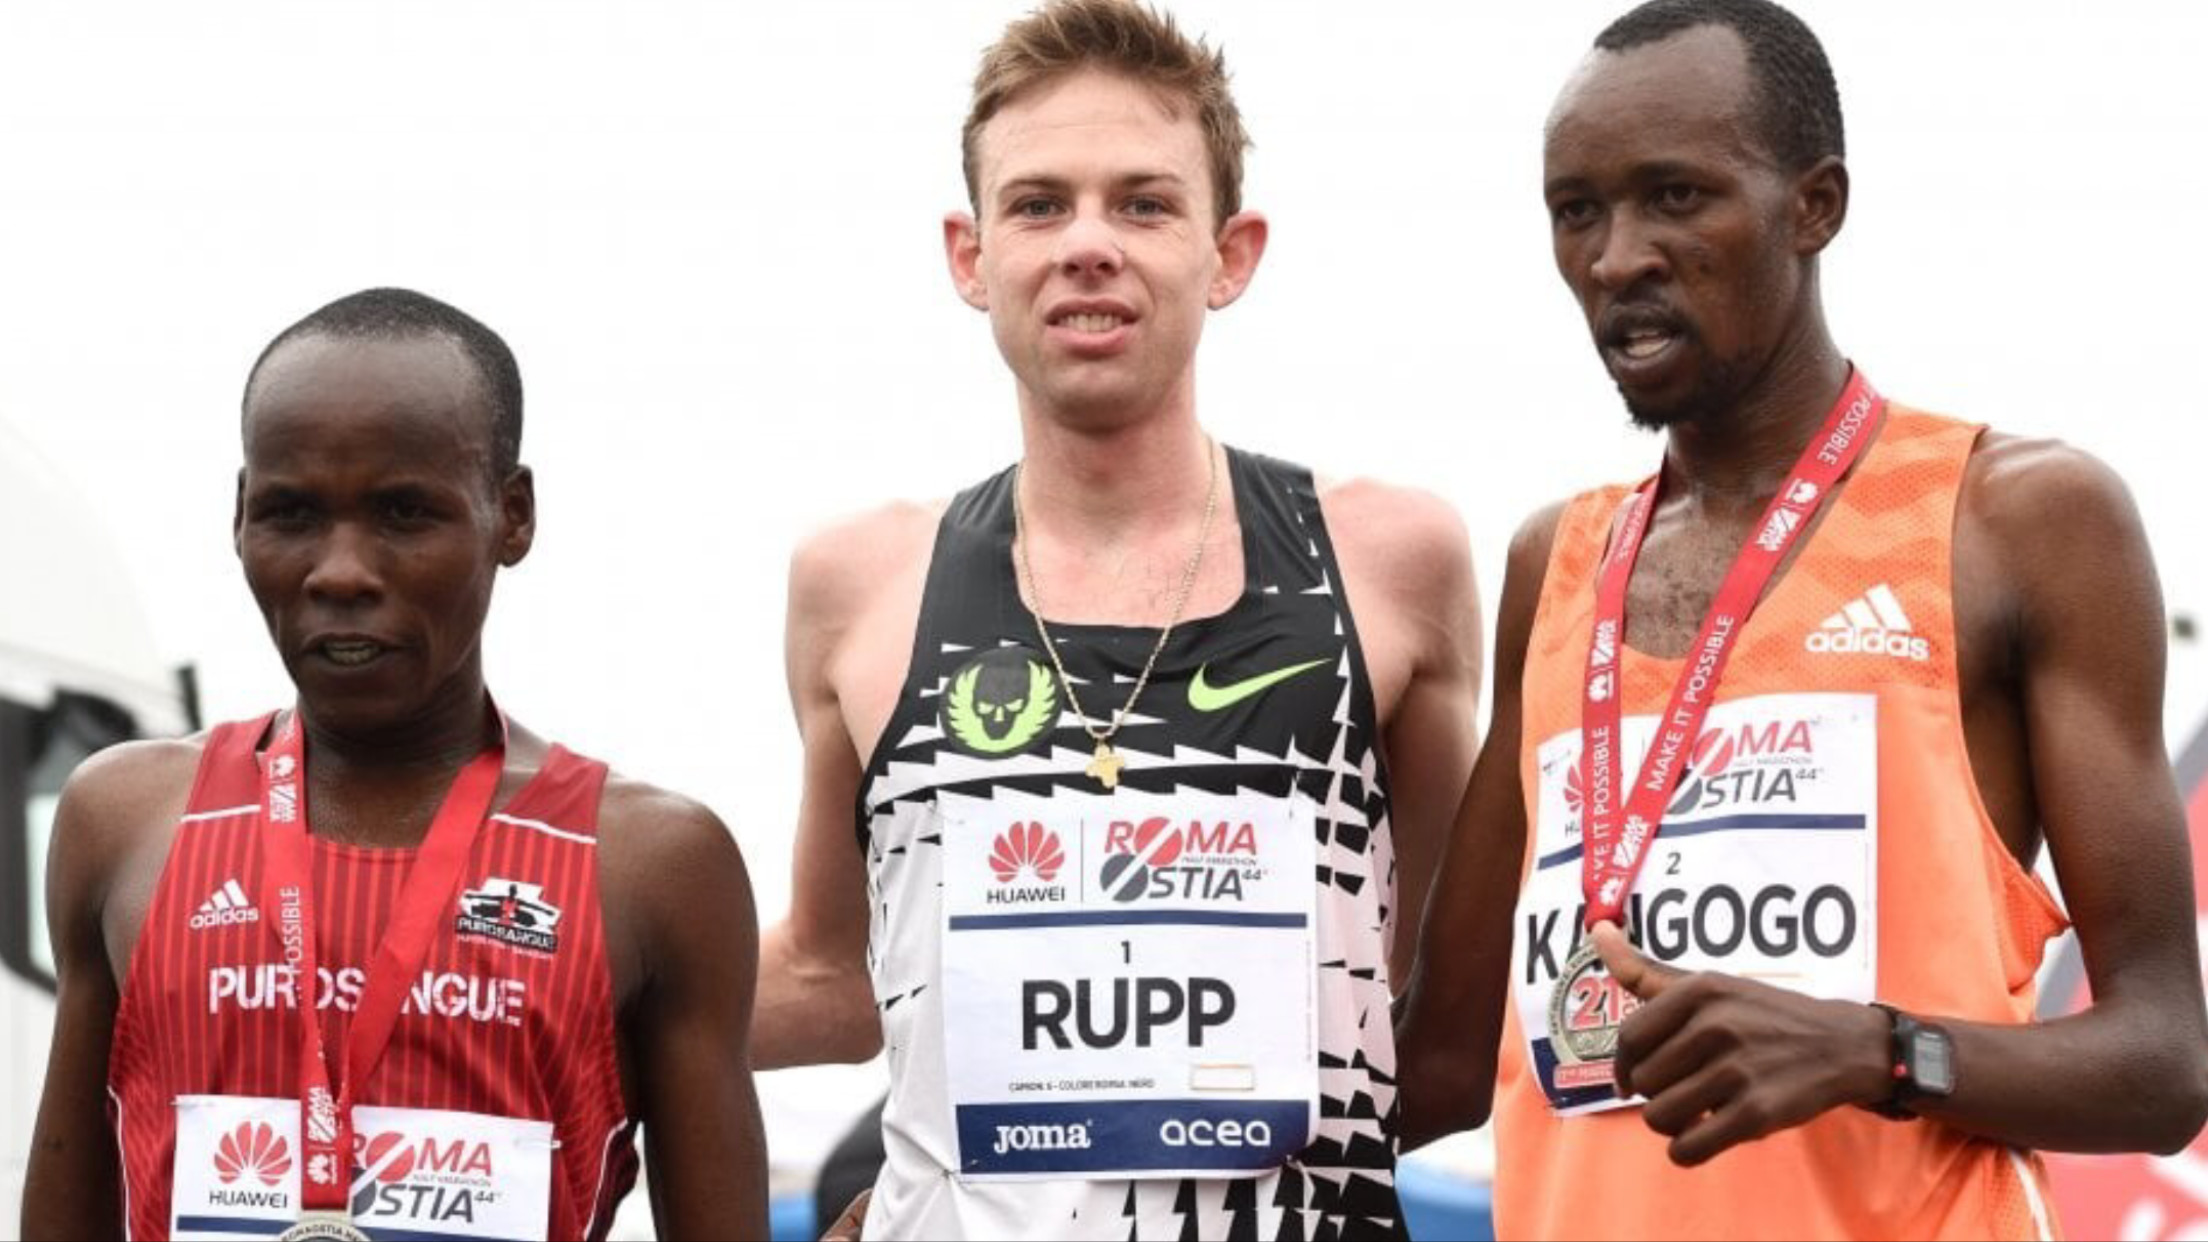 Galen Rupp runs first sub 60 to win 44th annual Roma Ostia Half Marathon